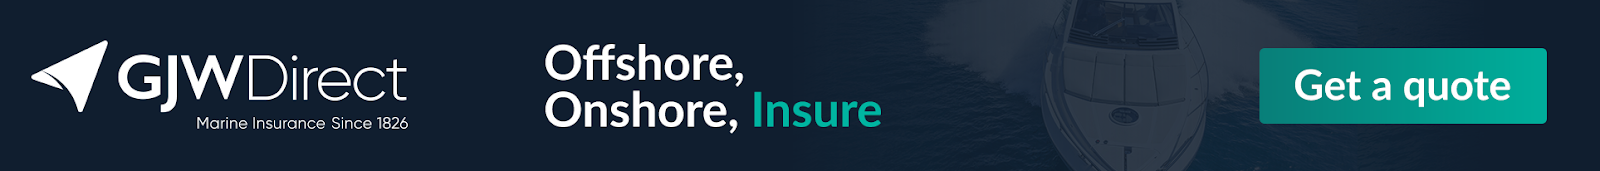 Get a quote for all inclusive boat insurance with GJW